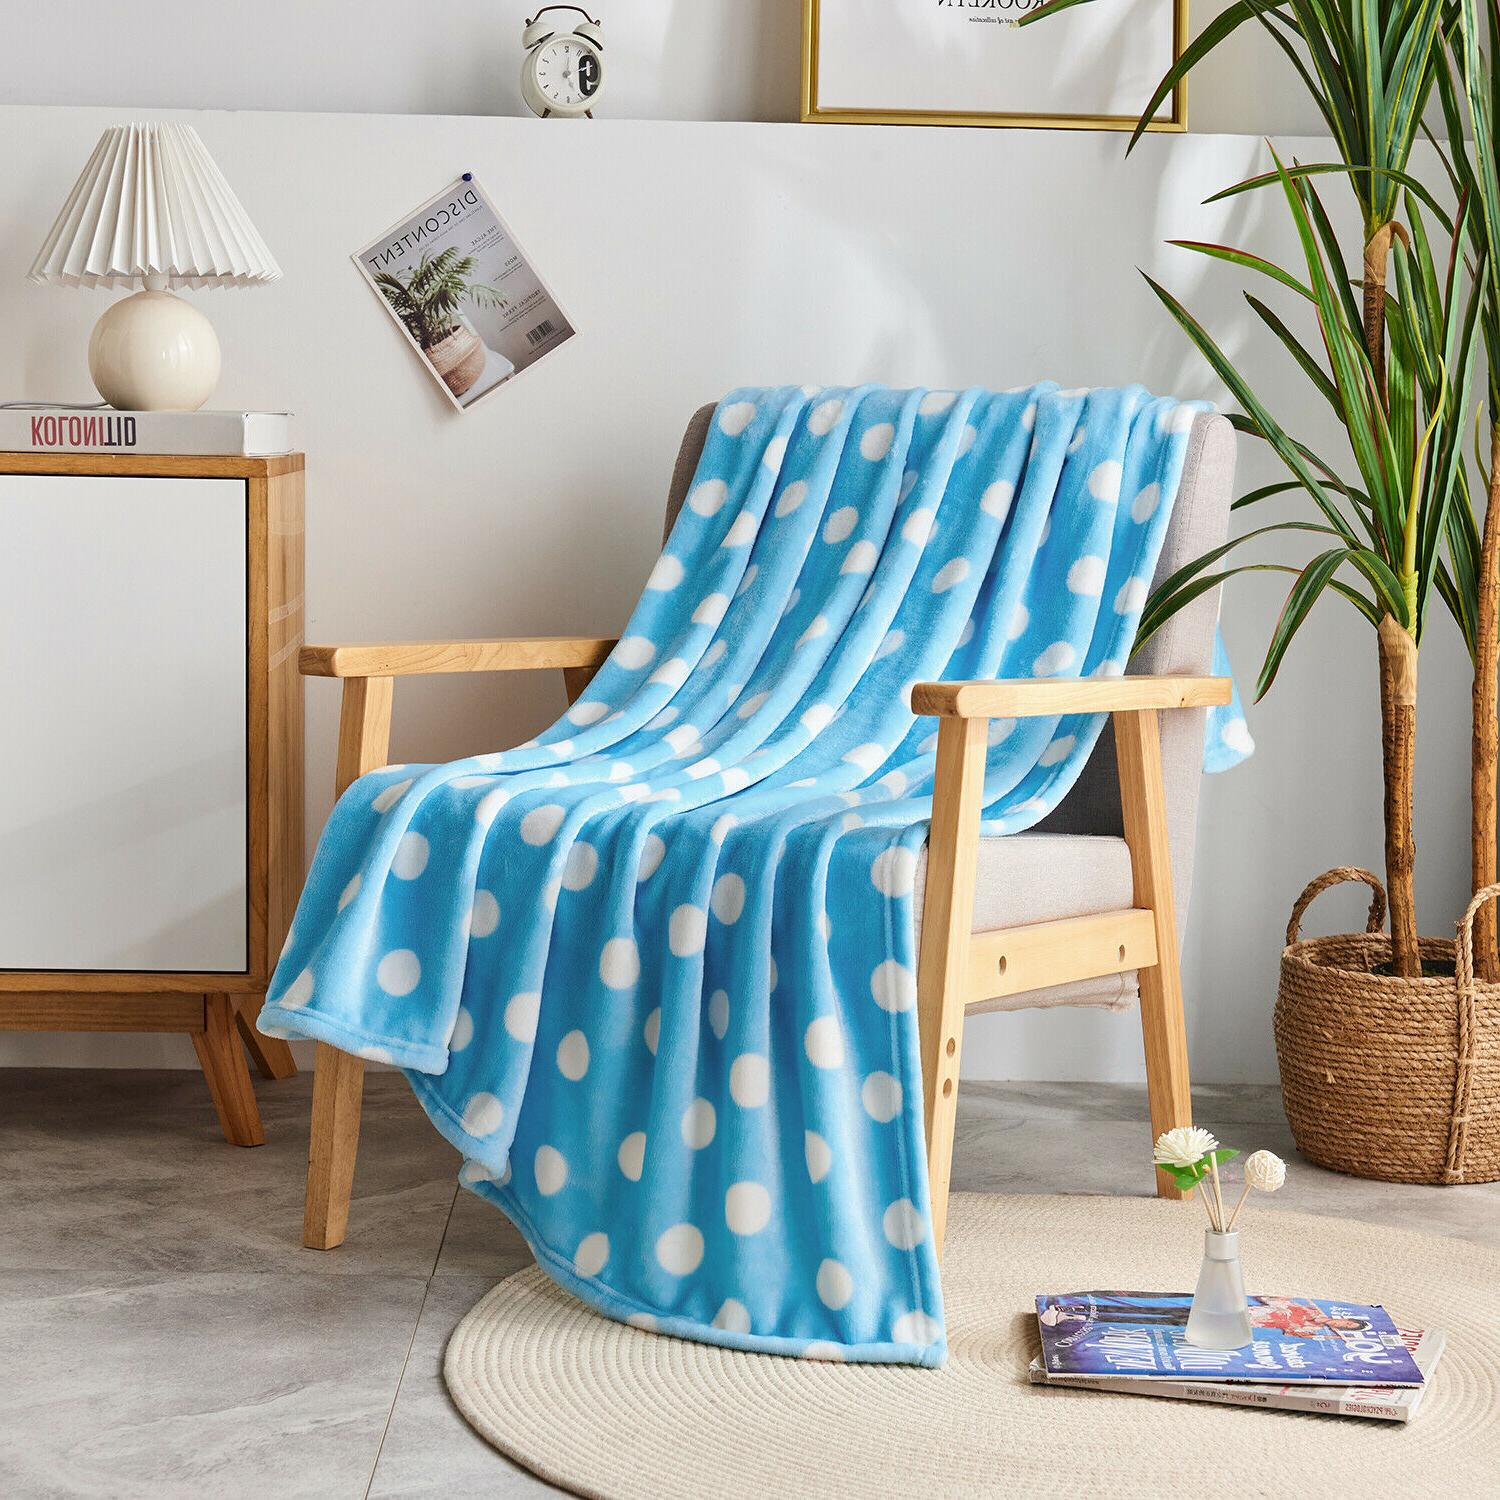 Super Soft Fleece Throw Blanket for Couch Bed Chair